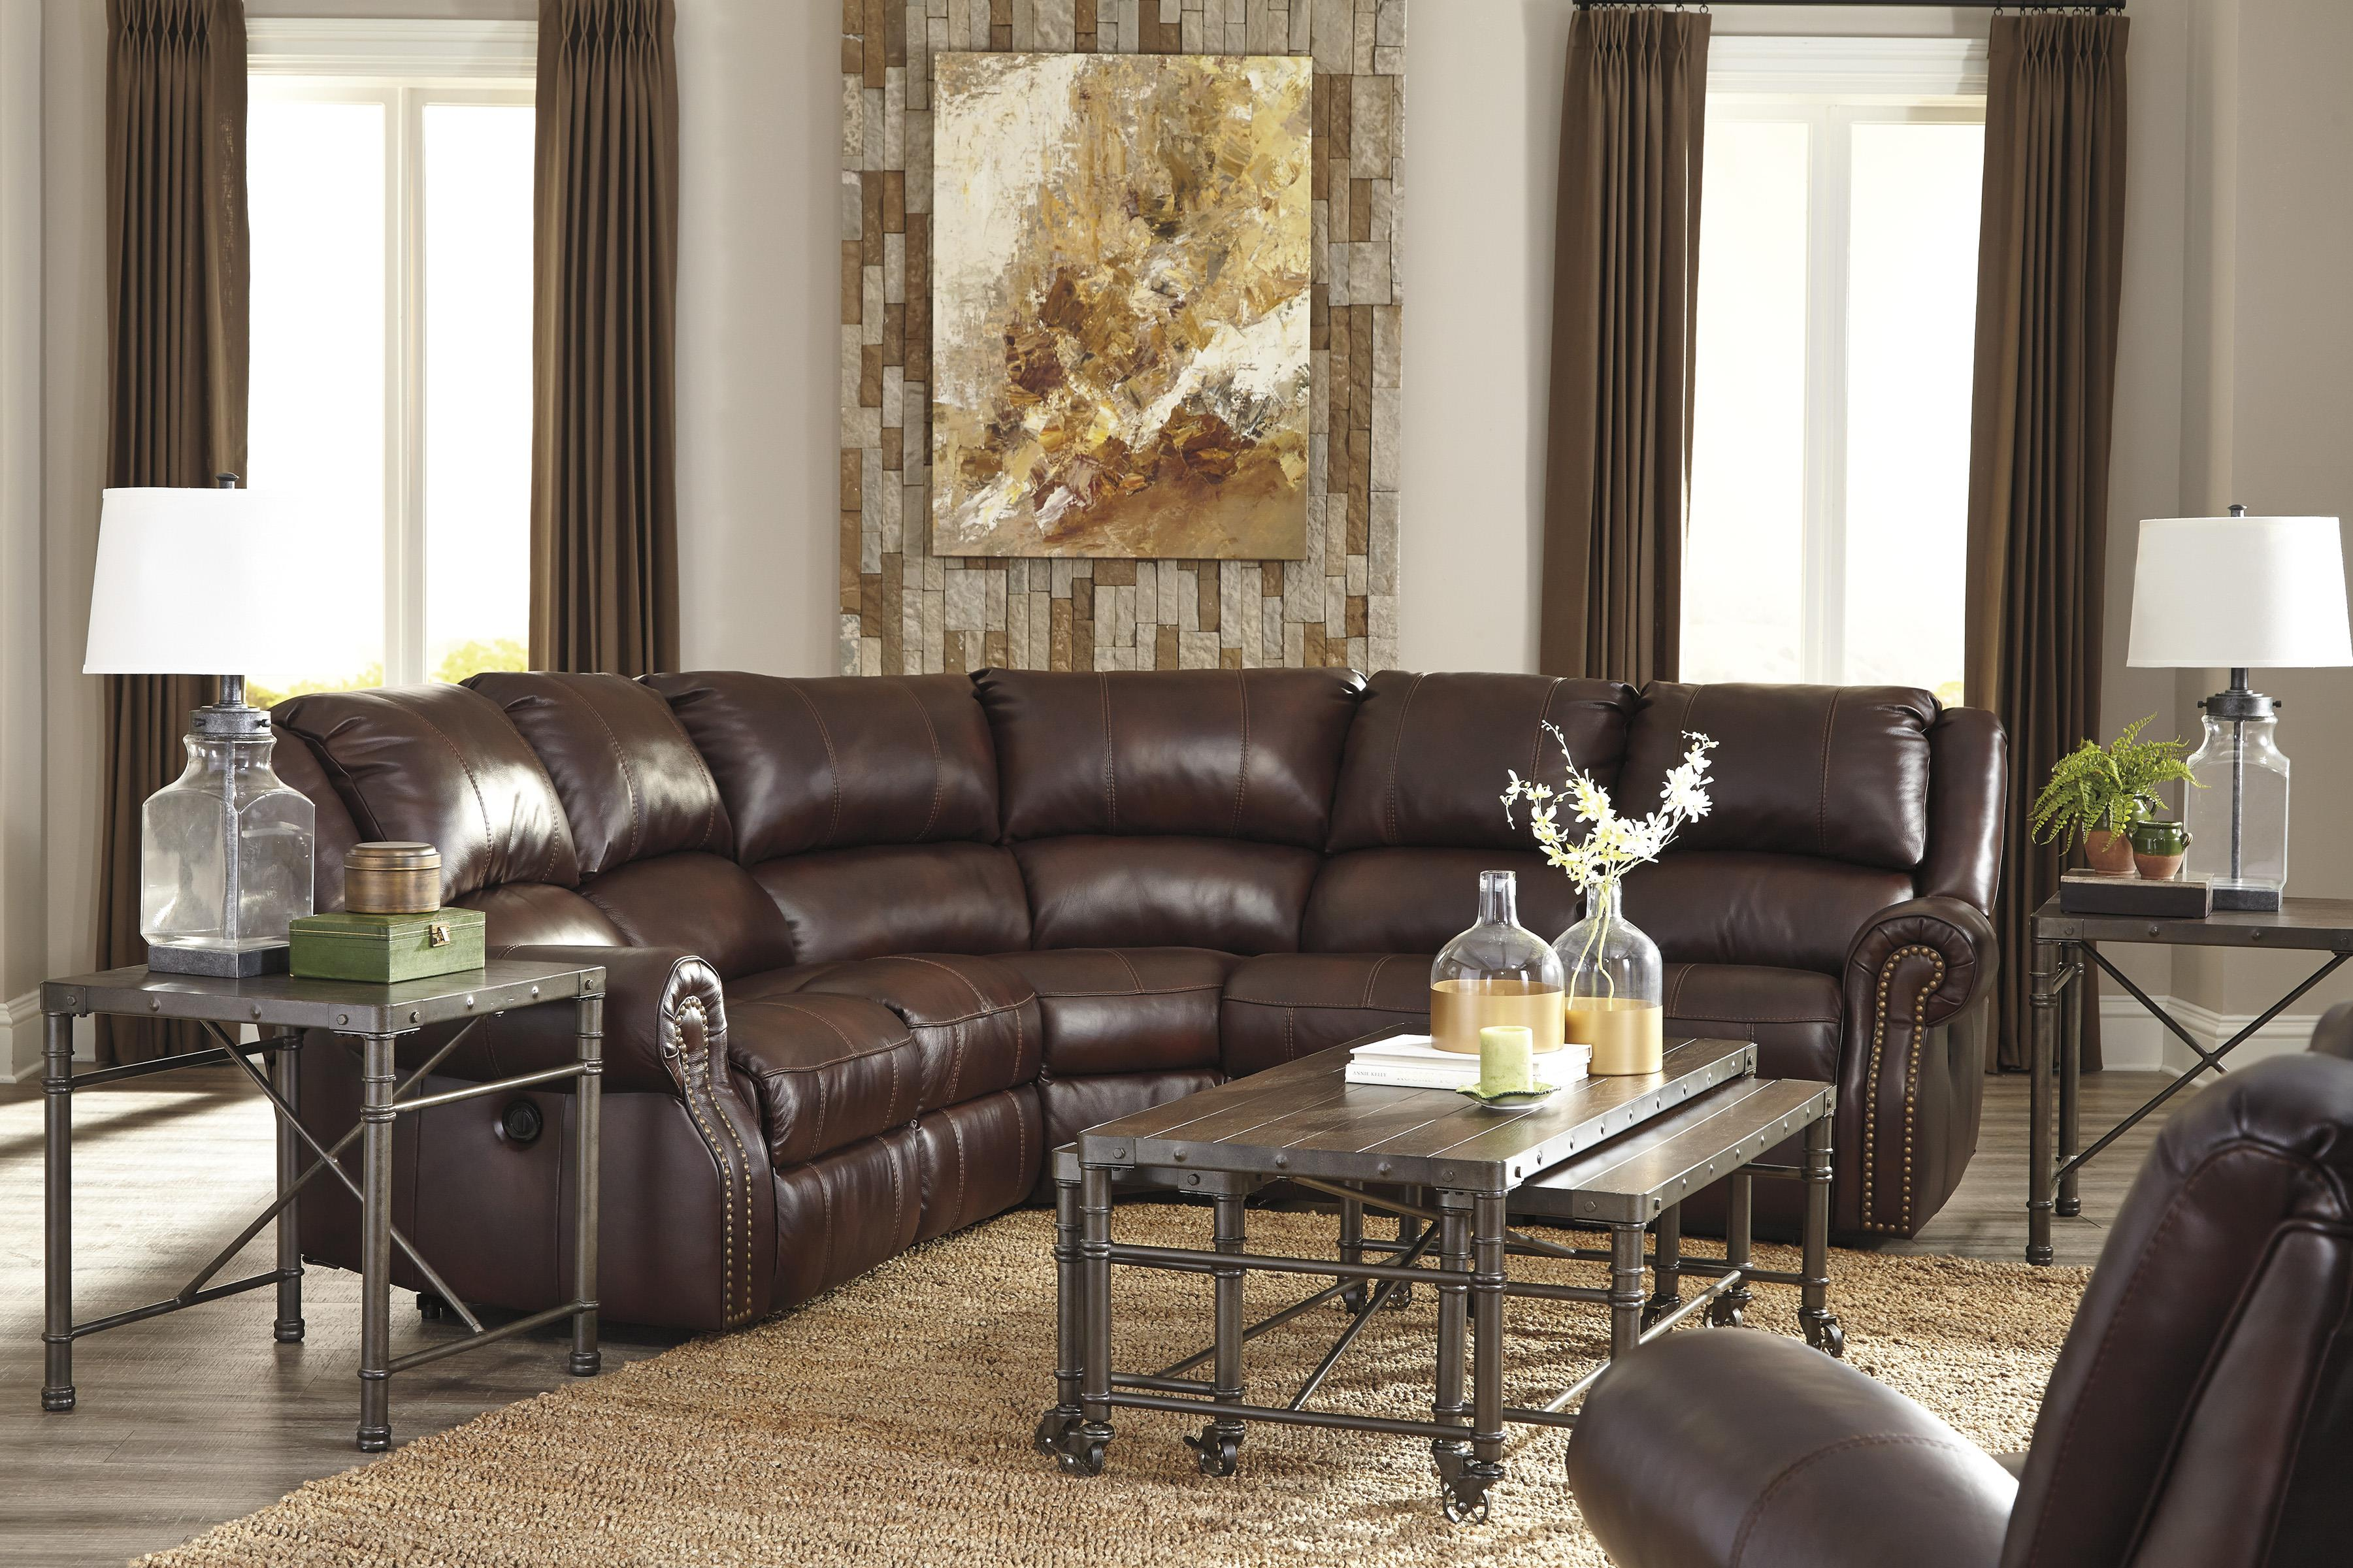 Signature Design by Ashley Collinsville Reclining Living Room Group - Item Number: U72100 Living Room Group 1